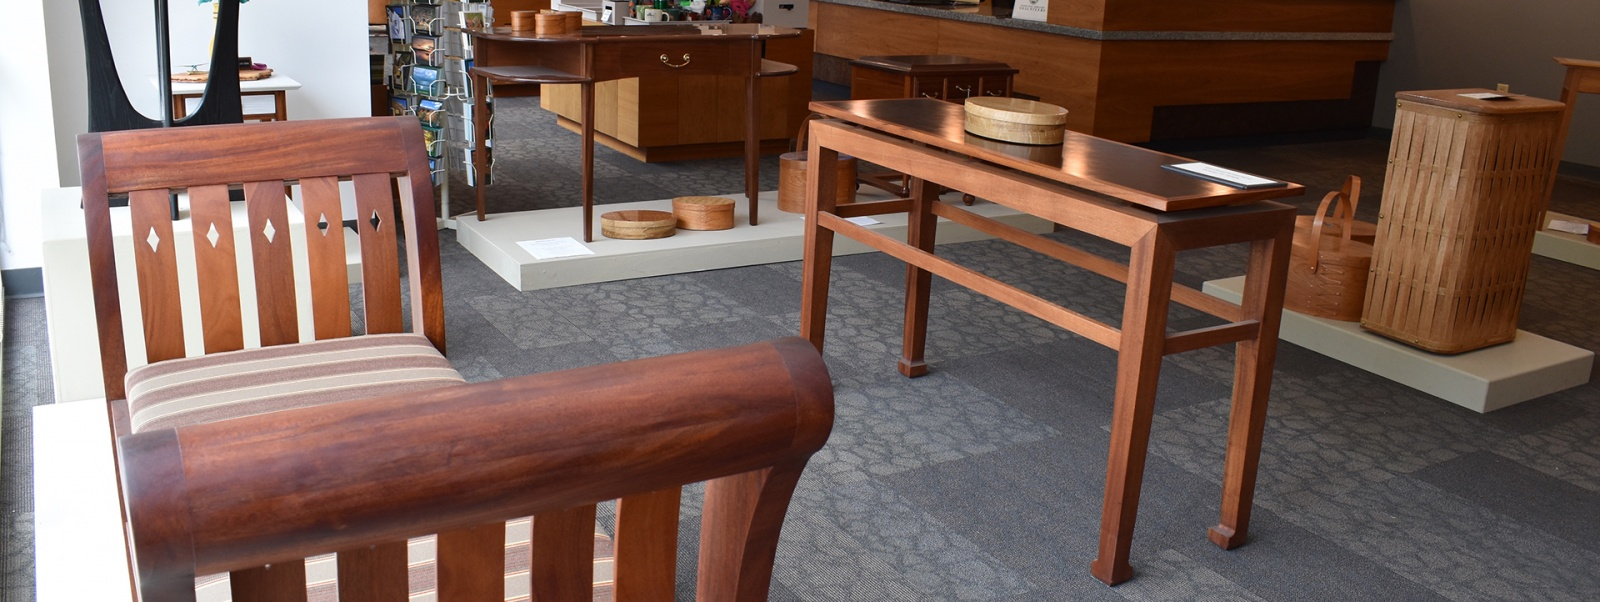 The Furniture Masters Exhibition Gallery is located at 49 South Main Street in Concord, NH